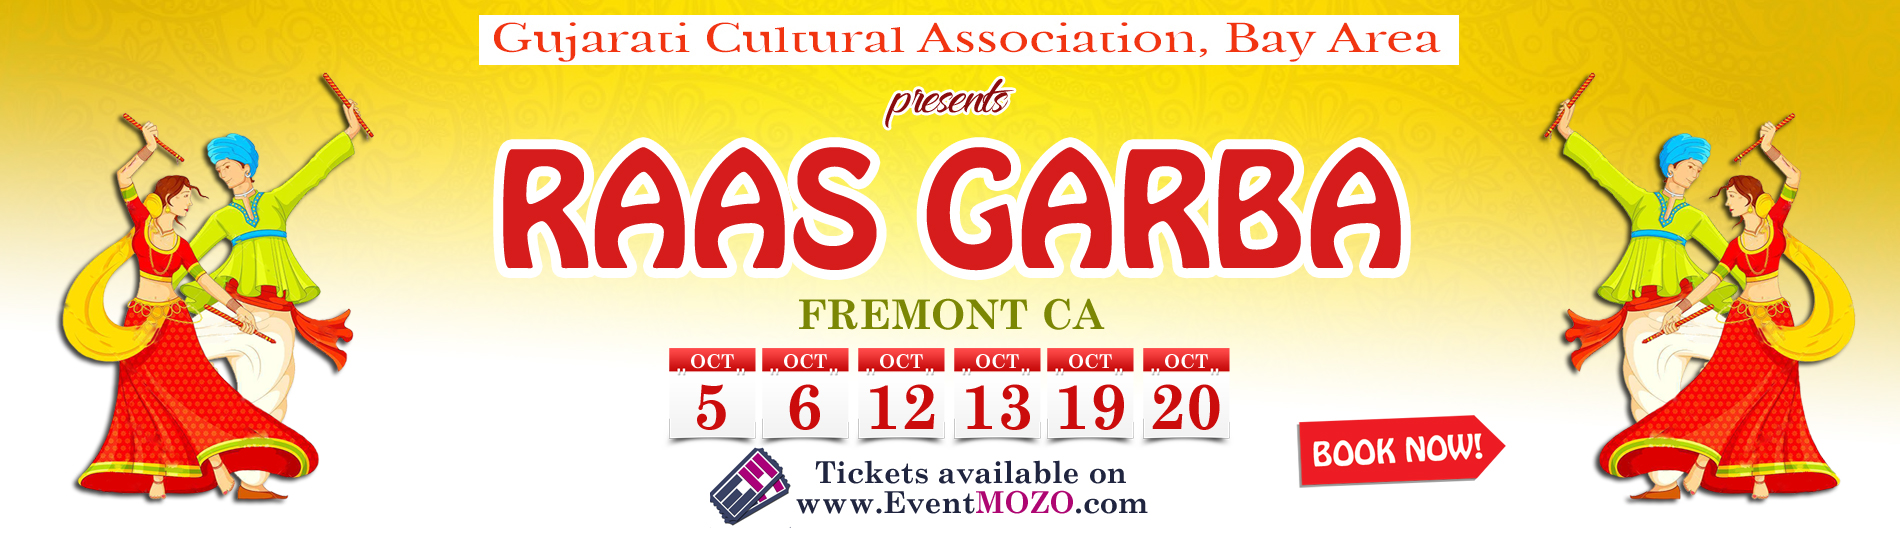 EventMozo RAAS GARBA